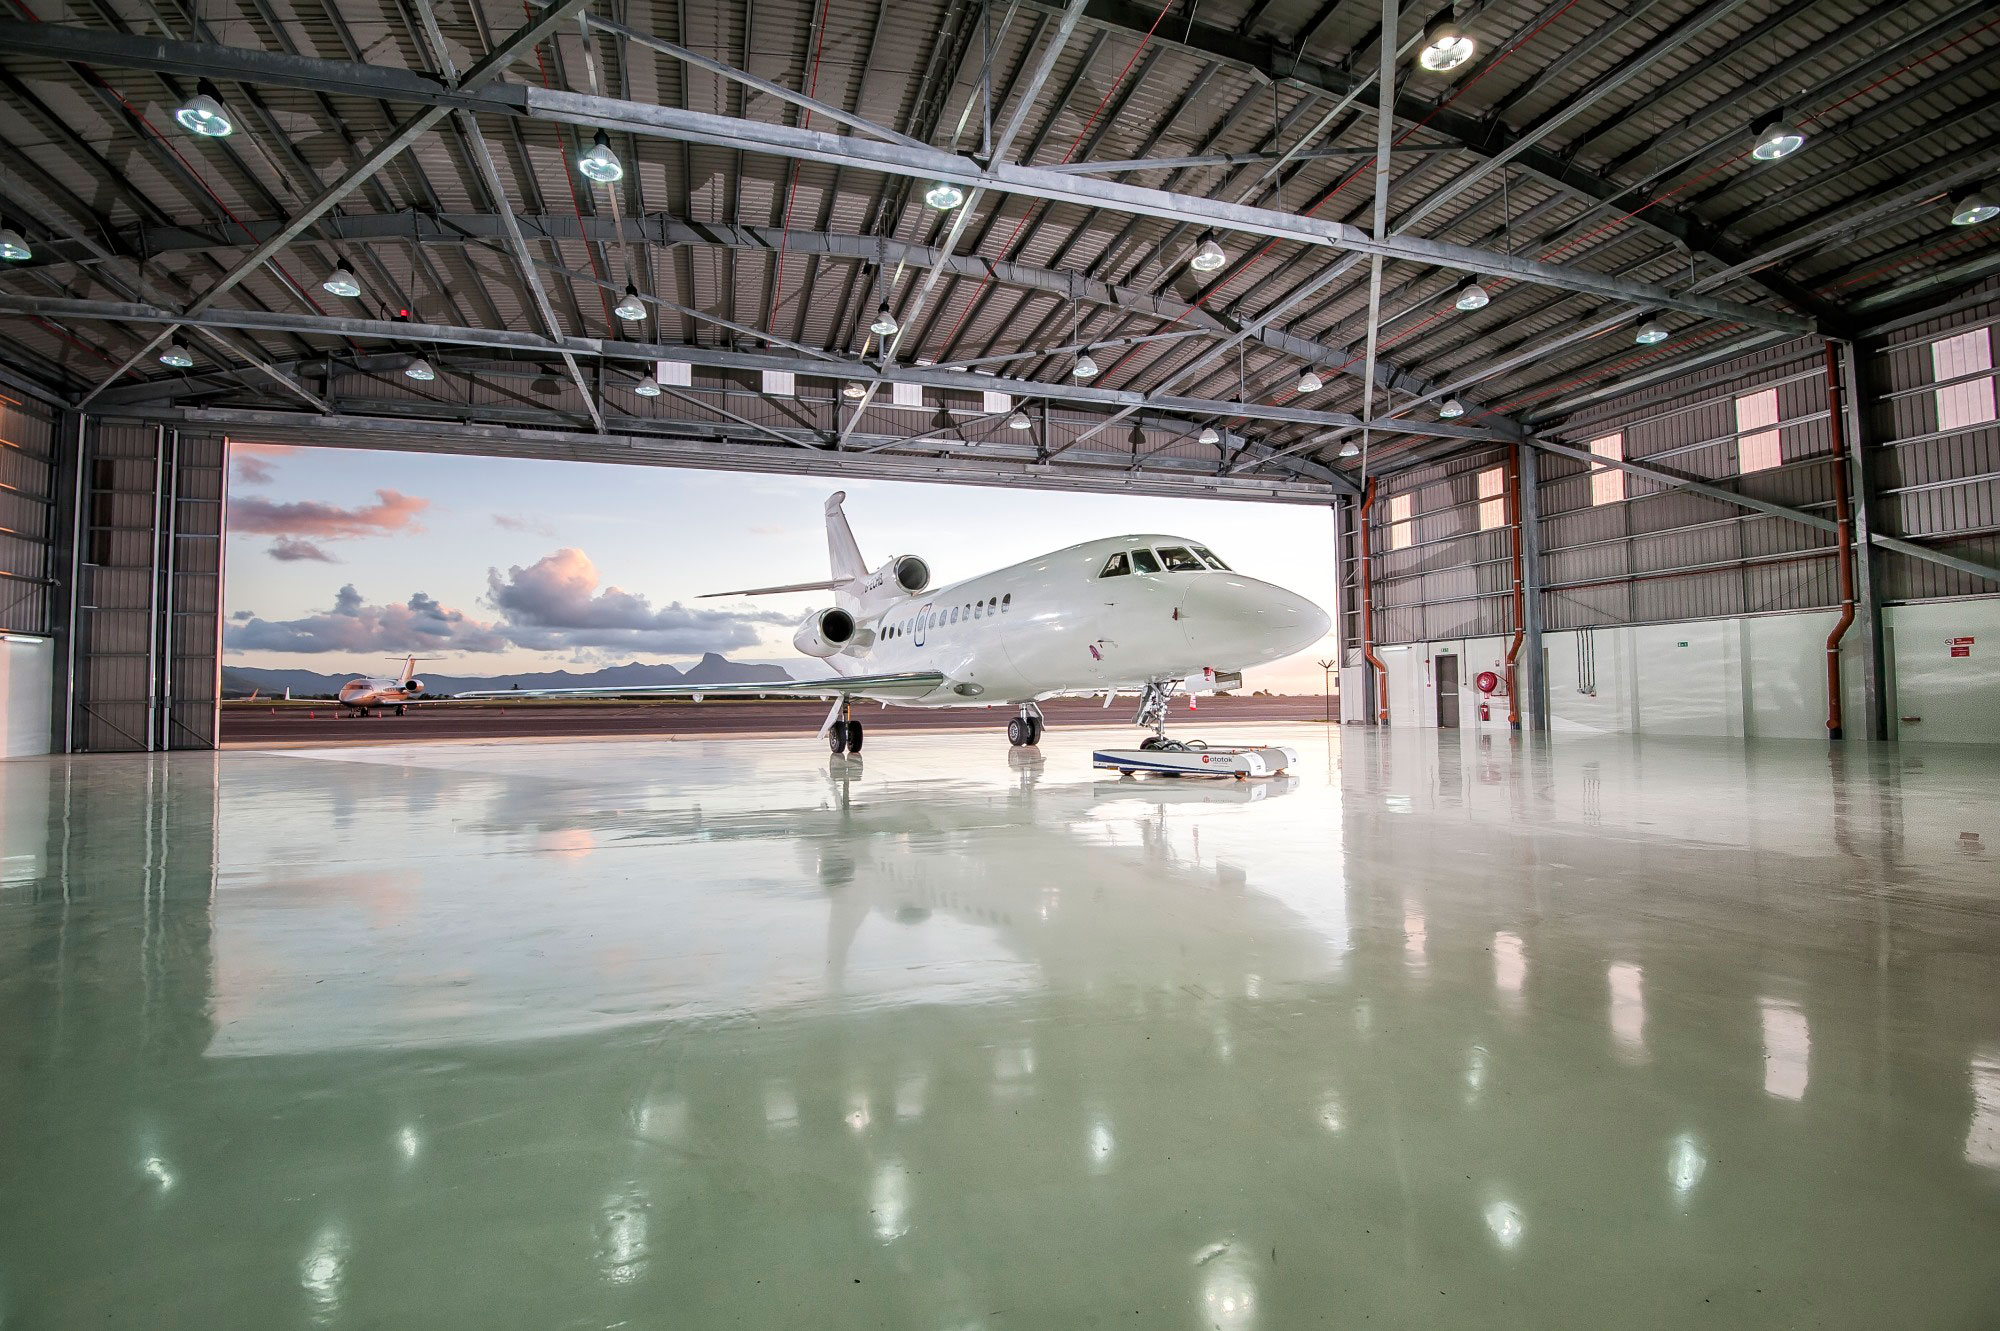 Yu Lounge S New Private Aviation Hangar Opens In Africa